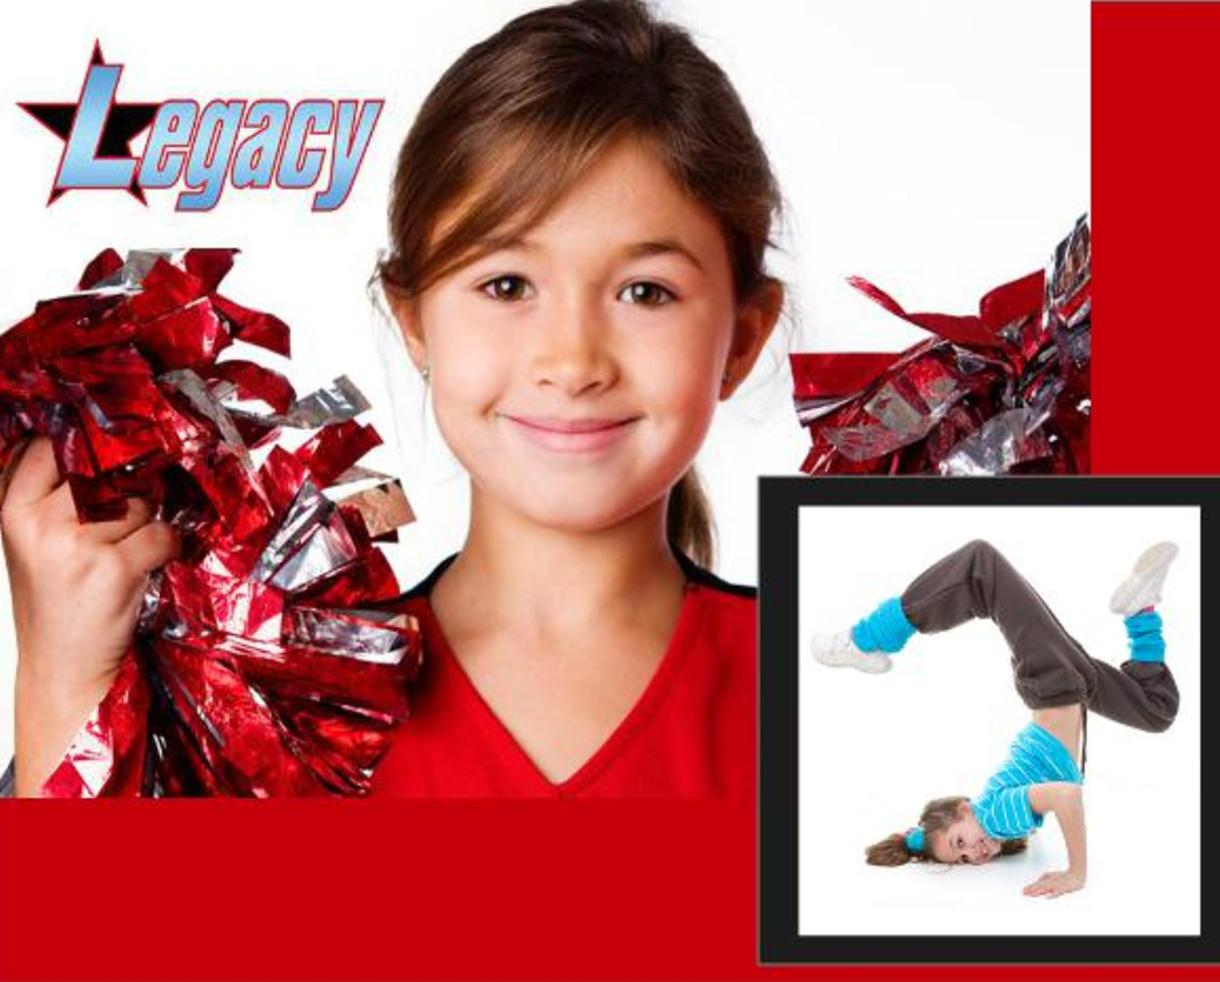 $129 for Cheerleading Camp at All Star Legacy for Ages 5-14 - Ashburn or Manassas (33% Off)